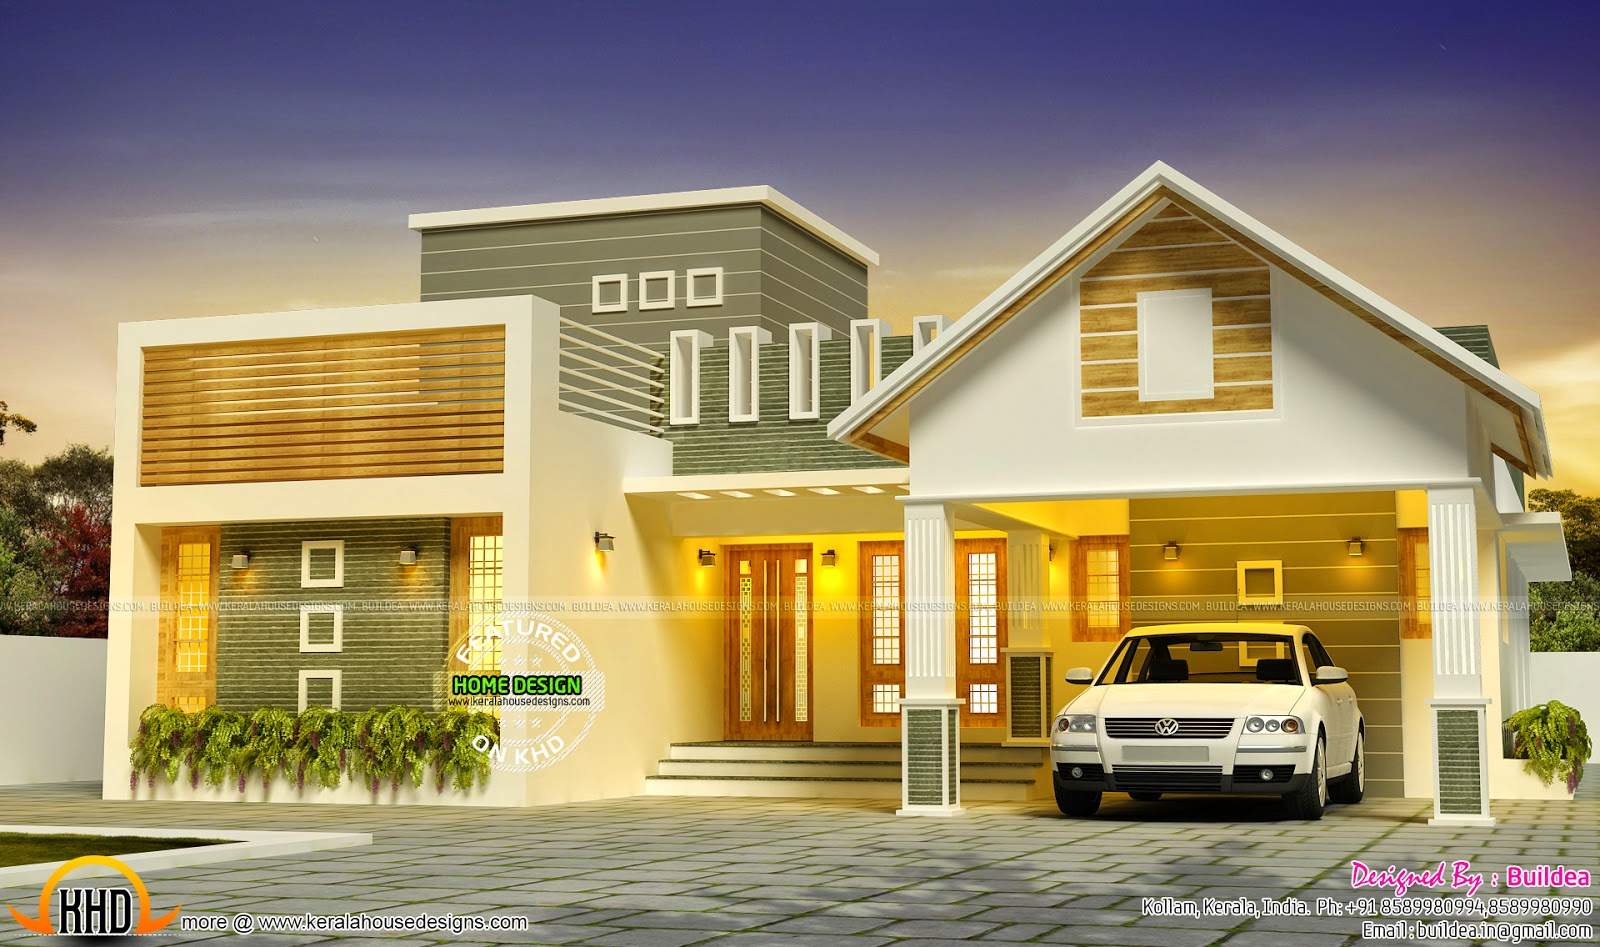 Awesome dream home design kerala home design and floor plans for Dream house plans